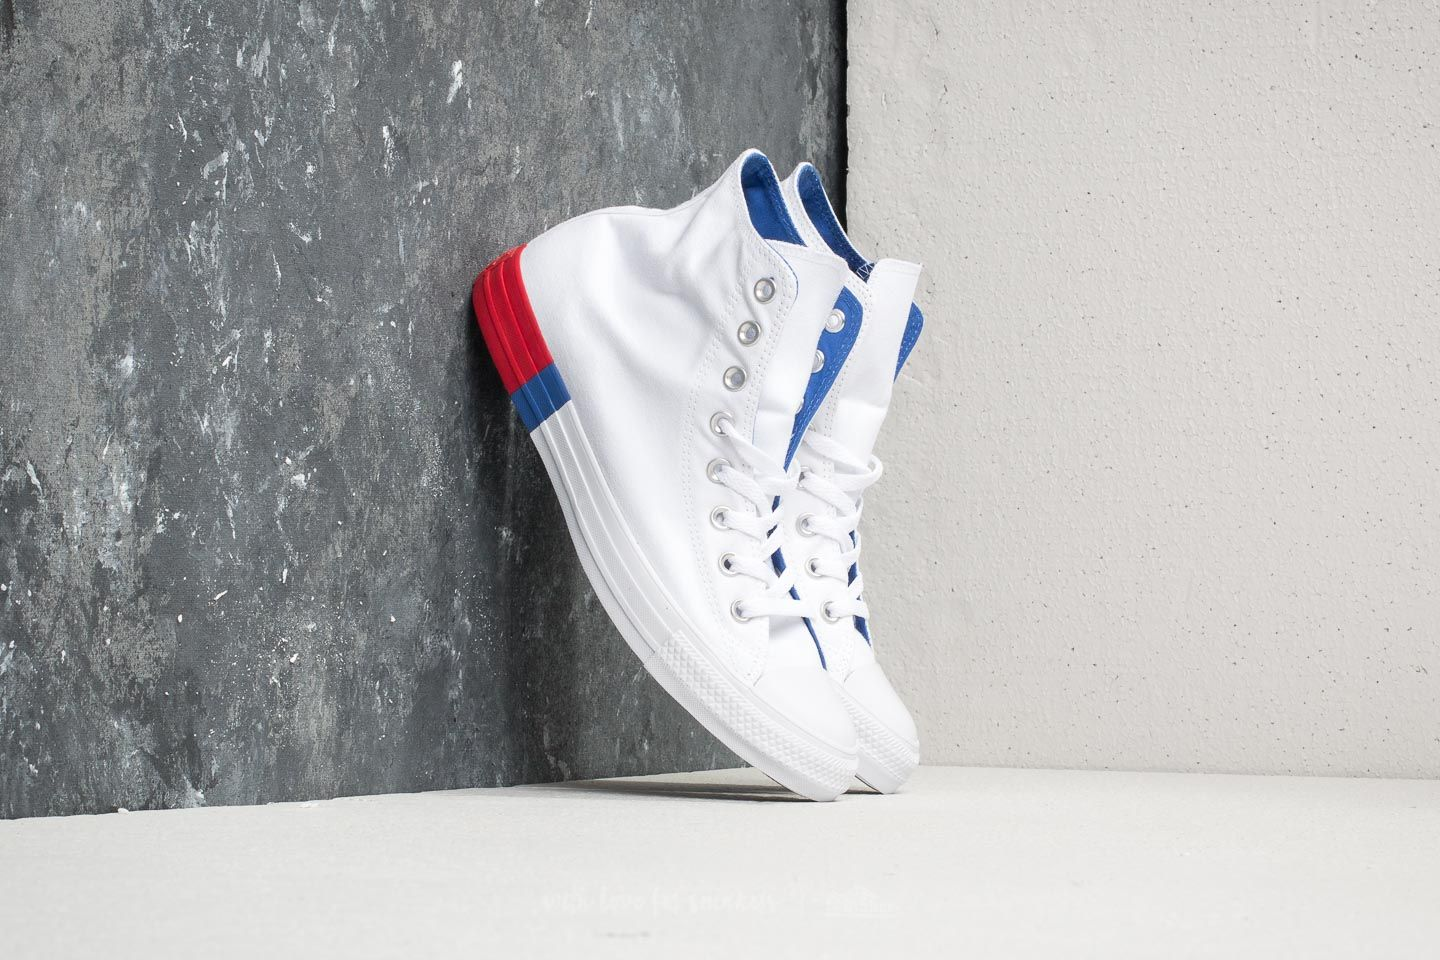 d6b163a1775f Converse Chuck Taylor All Star Hi White  Red  Blue